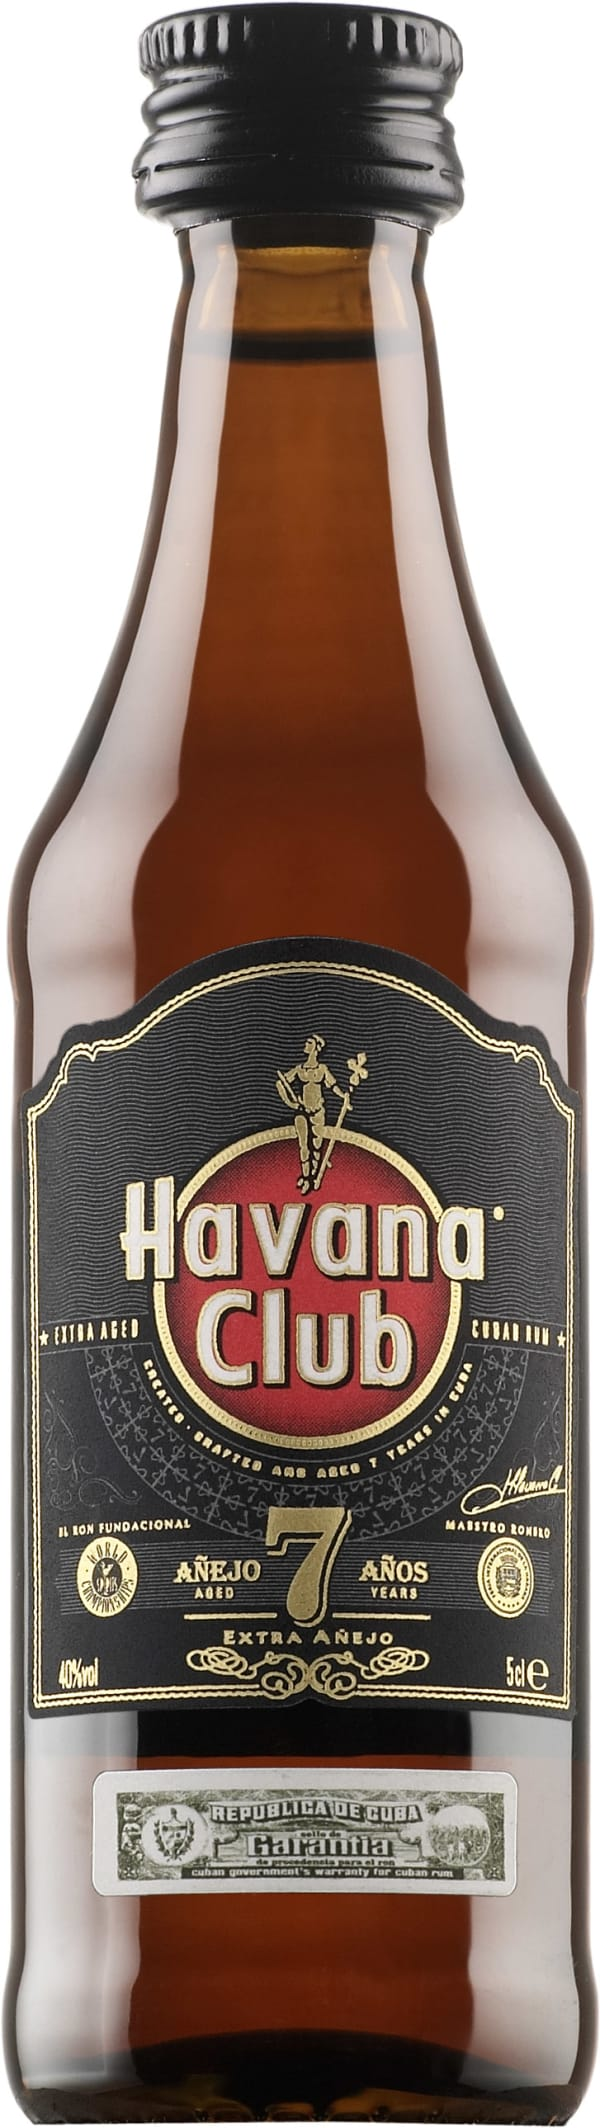 Havana Club Añejo 7 Años  plastic bottle